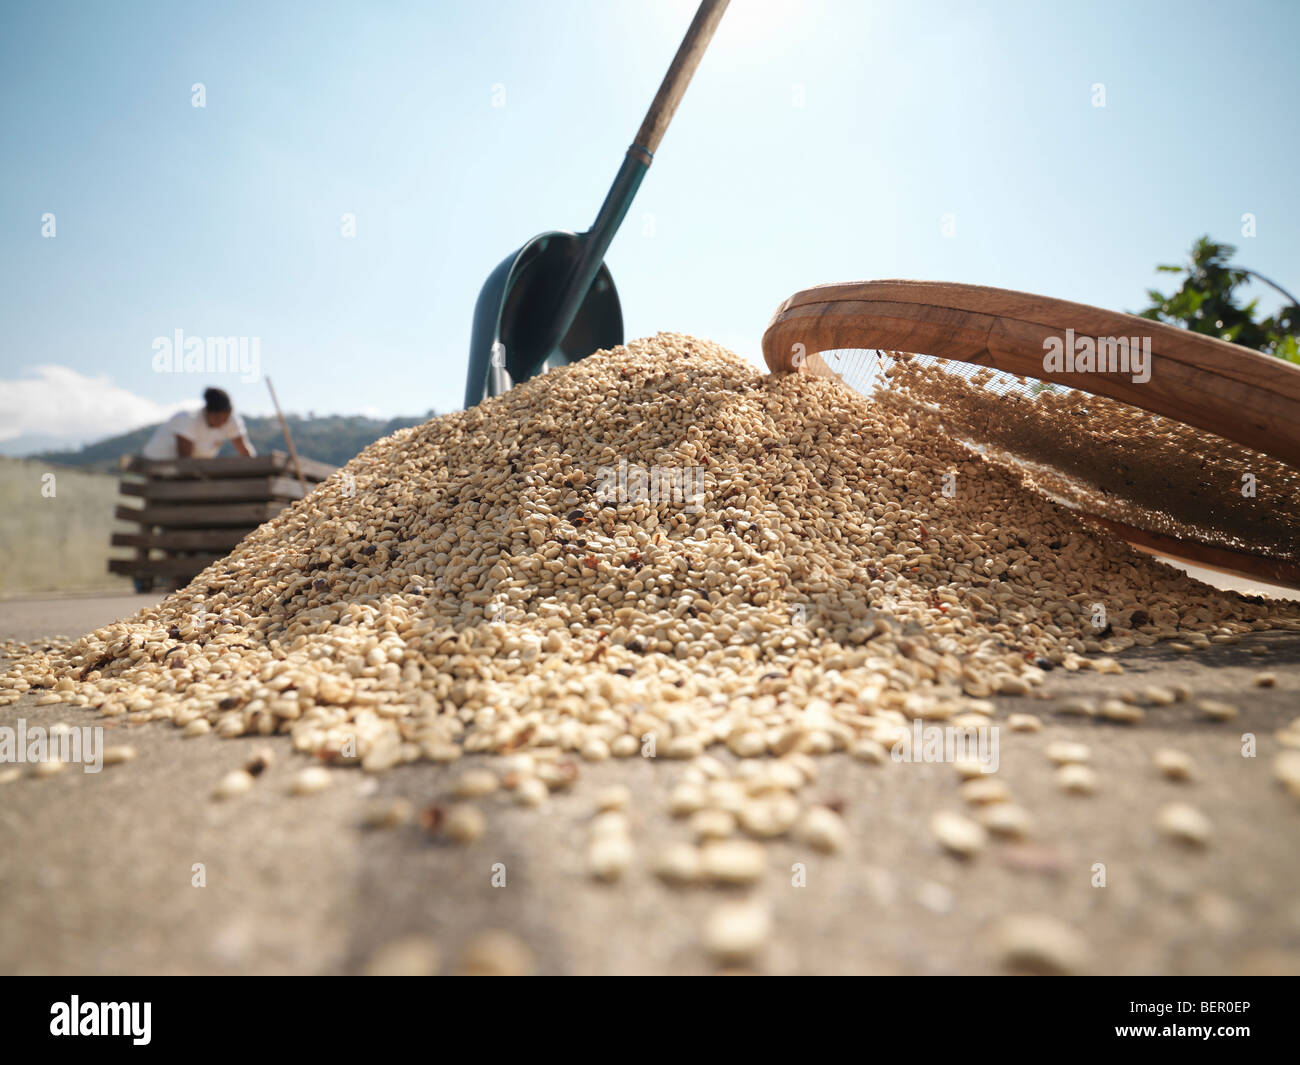 Pile Of Coffee Beans With Shovel - Stock Image